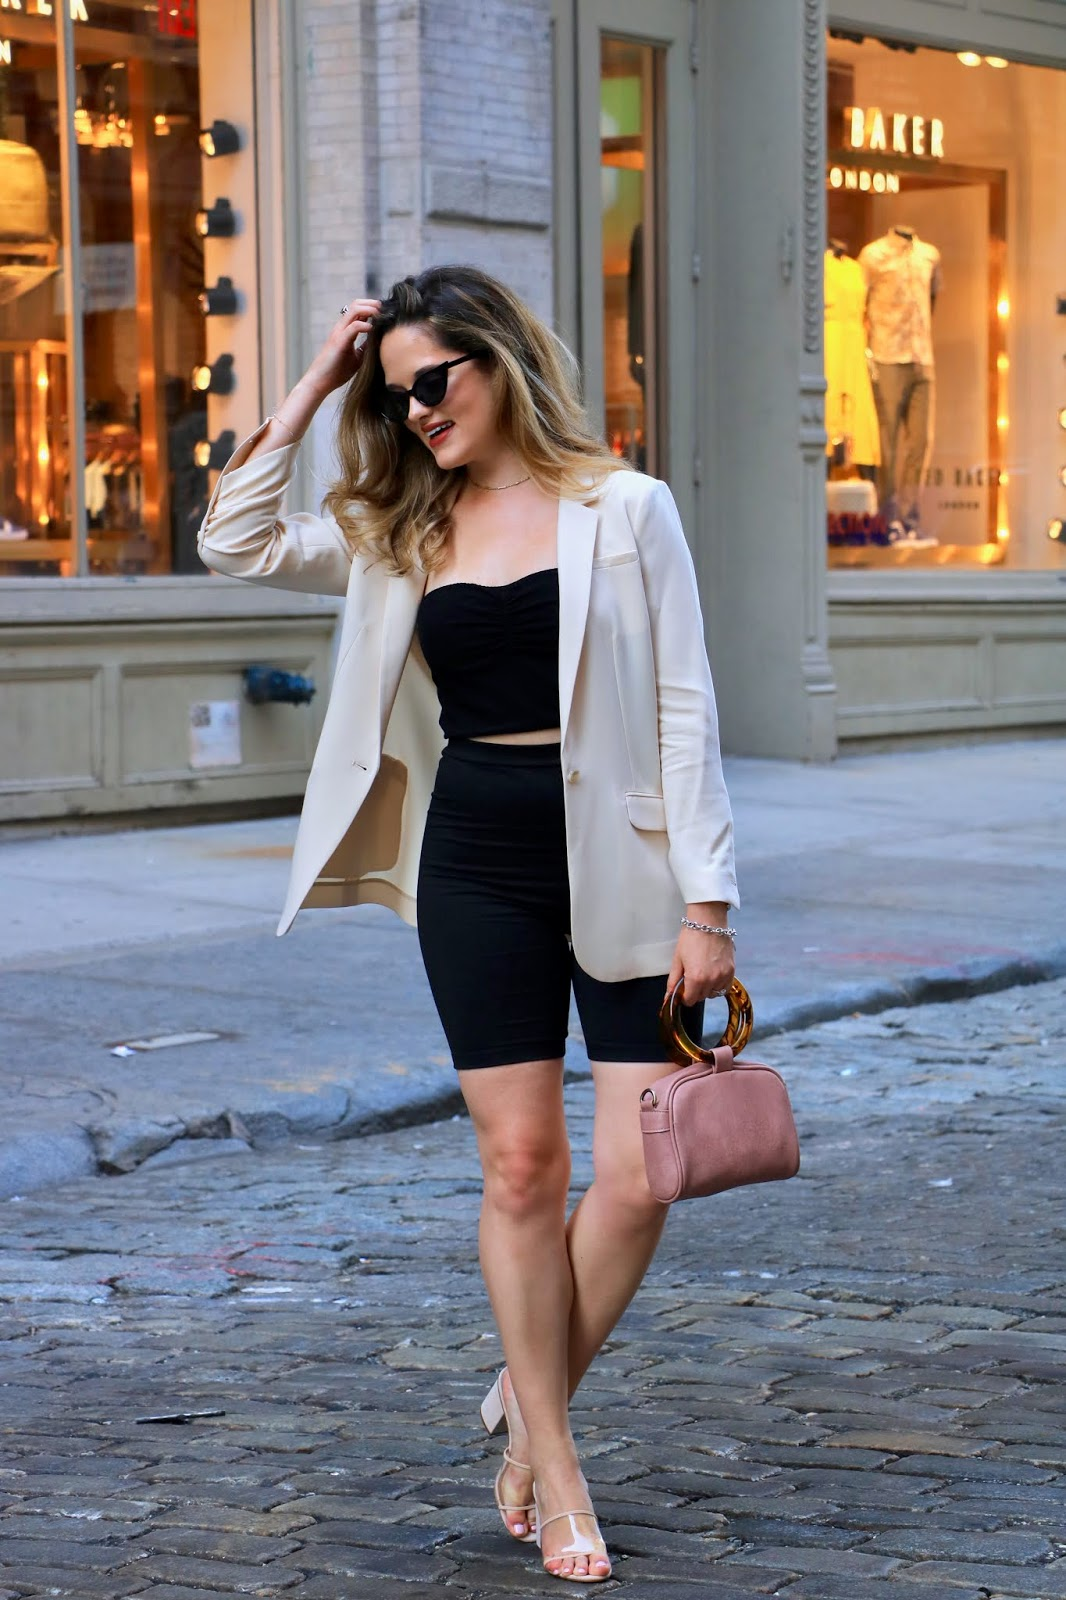 Nyc fashion blogger Kathleen Harper's bike shorts outfit ideas.